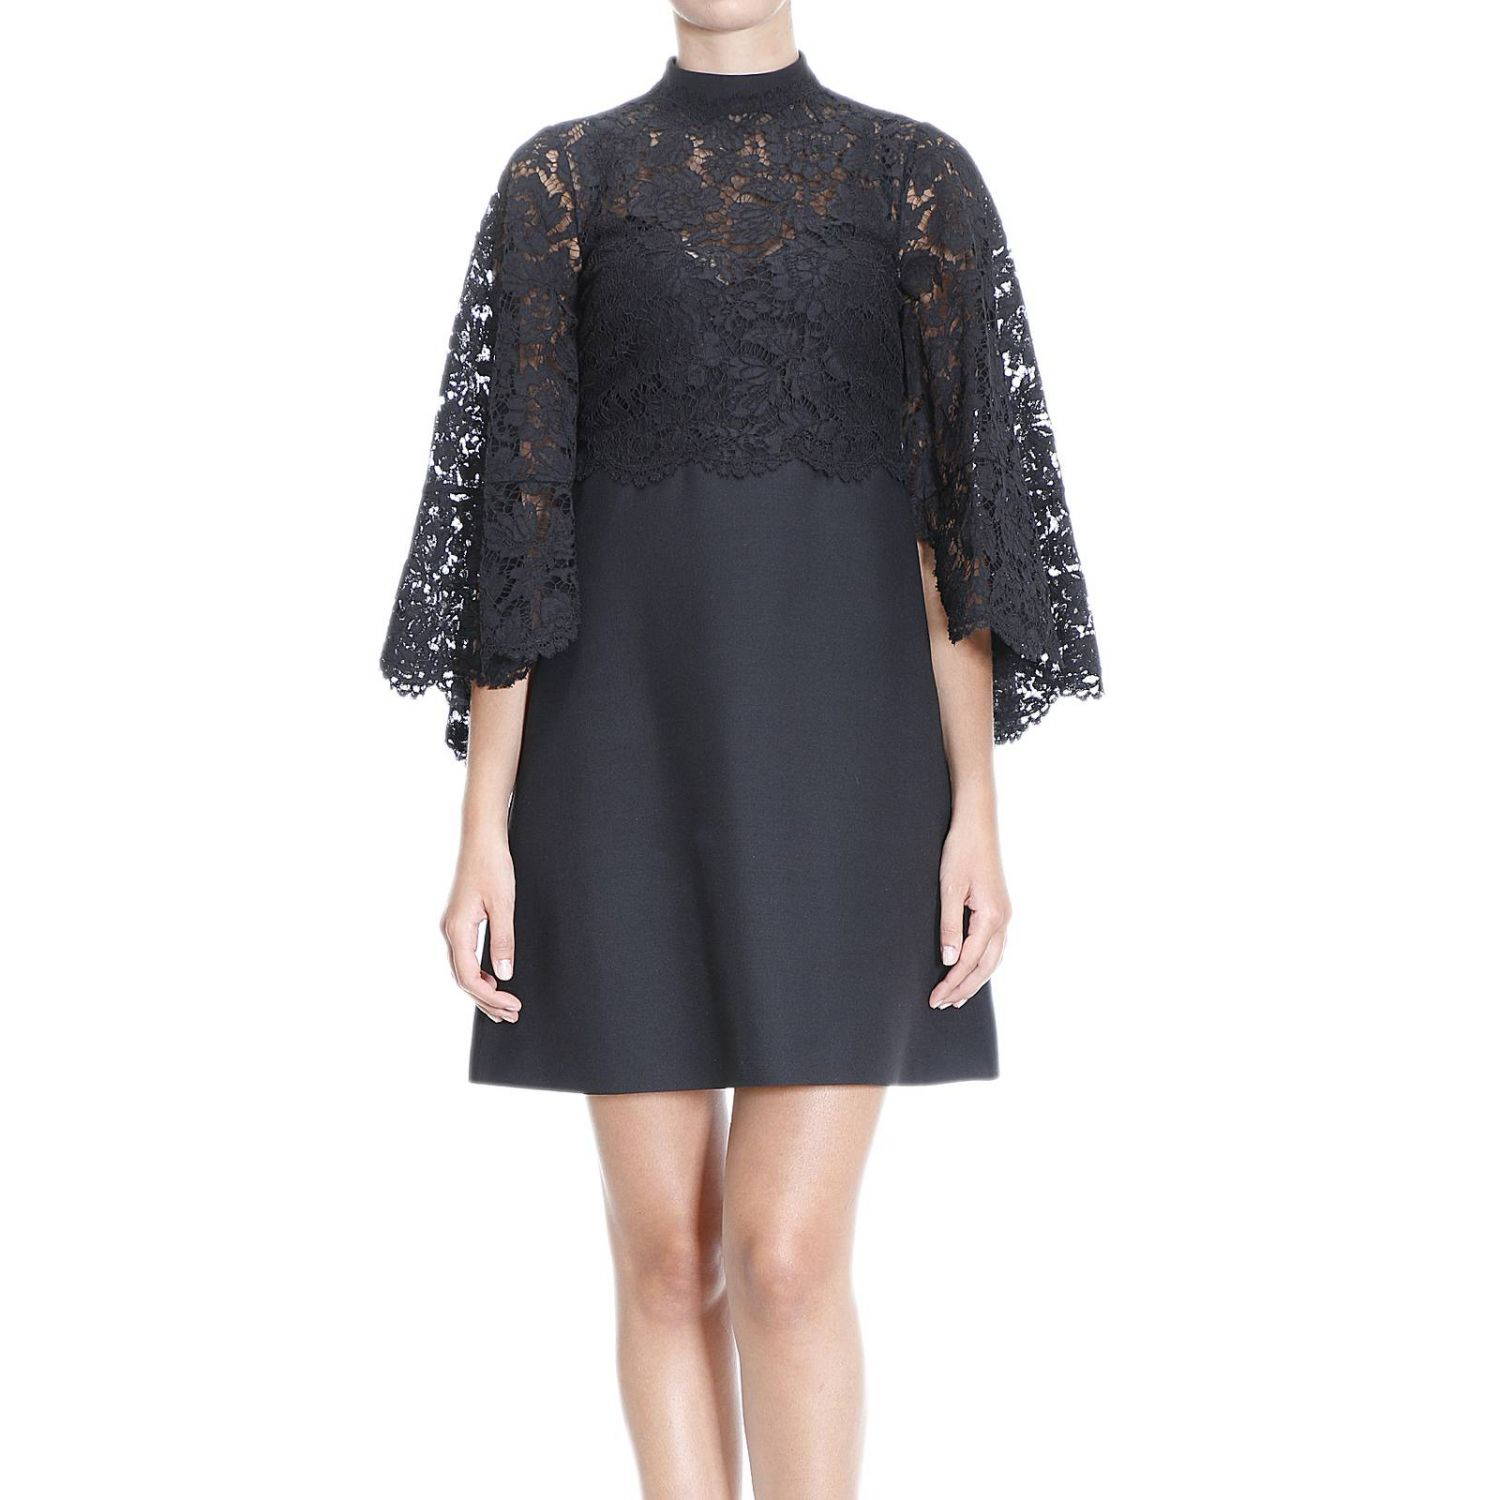 Dress Dress Woman Valentino 8108887